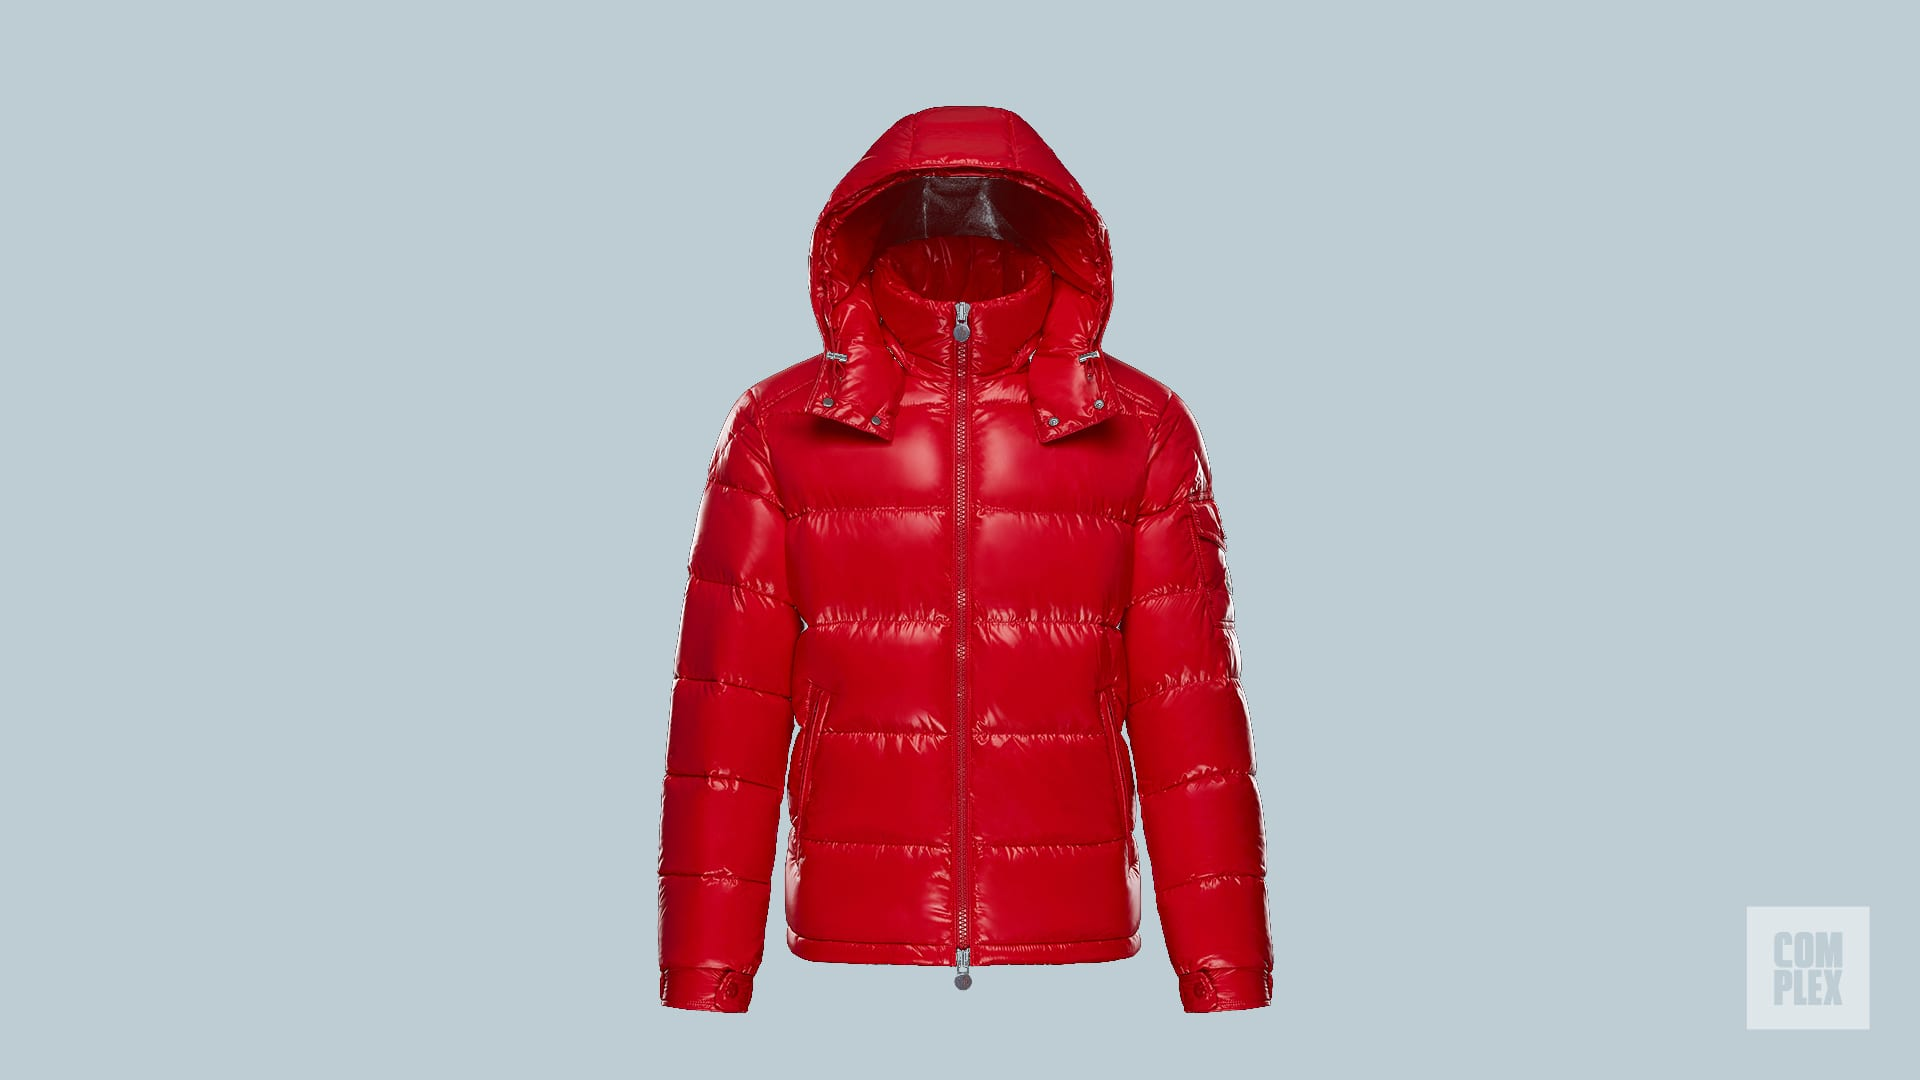 Best NYC Jackets and Outerwear Guide Moncler